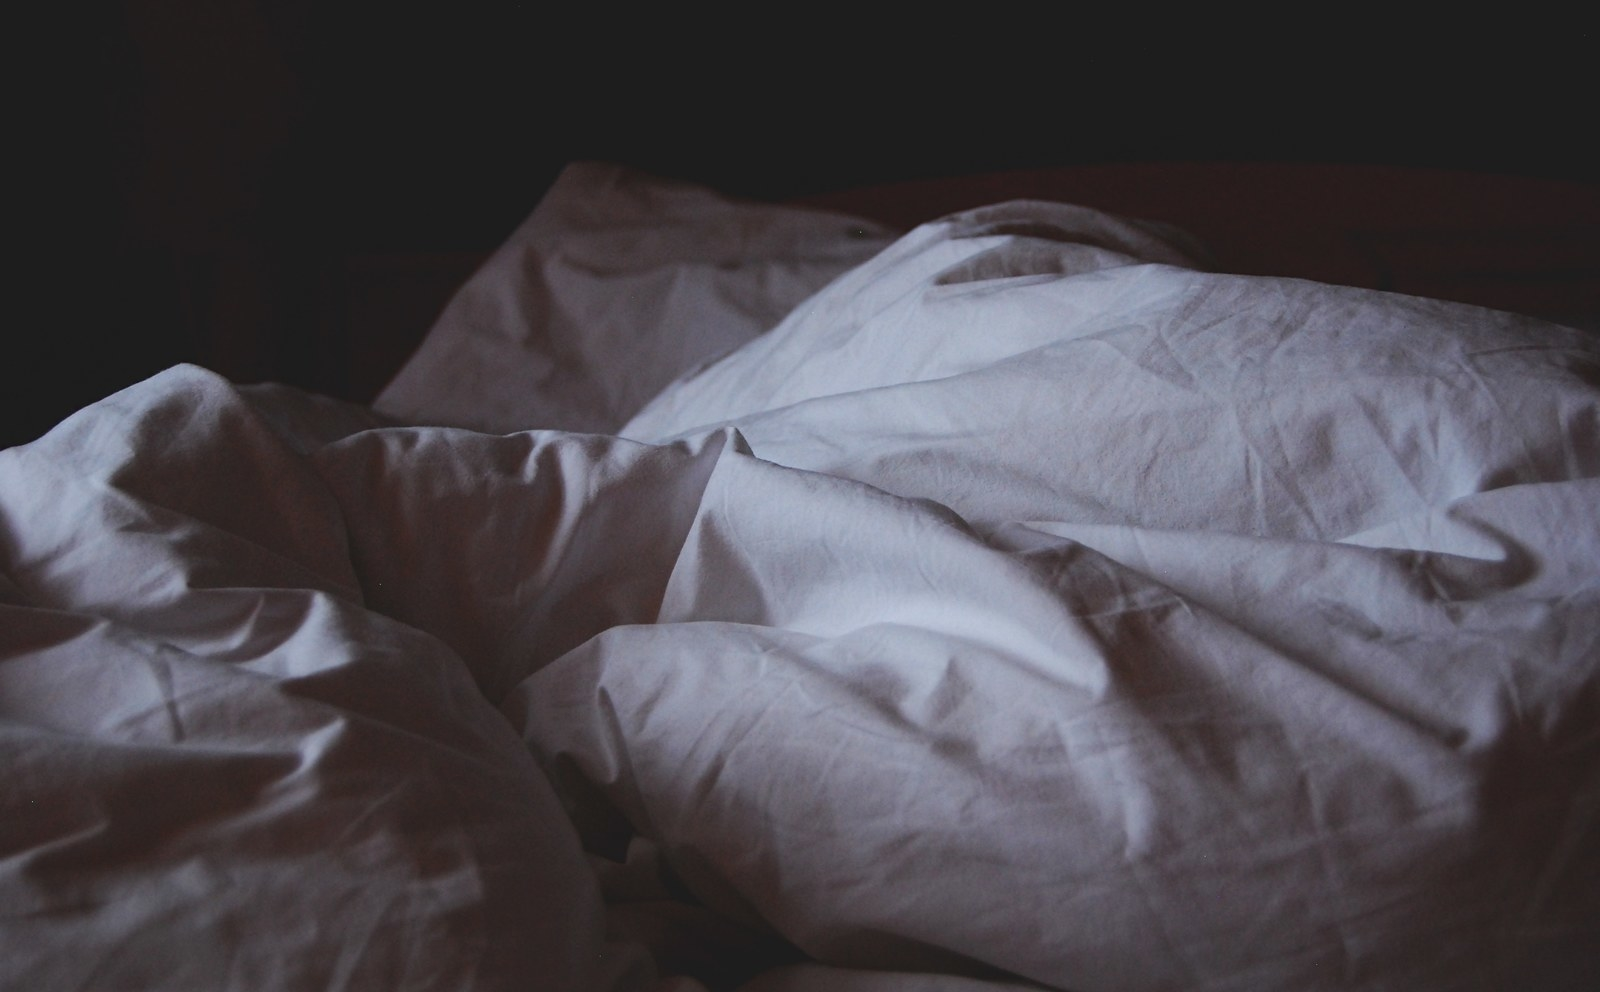 If you're looking to optimize your sleep, you want your sheets to have a 200–400 thread count. The lower the thread count, the more breathable the sheets become, so if you're a sweaty sleeper opt for sheets closer to 200. Natural materials like cotton, bamboo, and linen are your best bet as they wick away sweat.